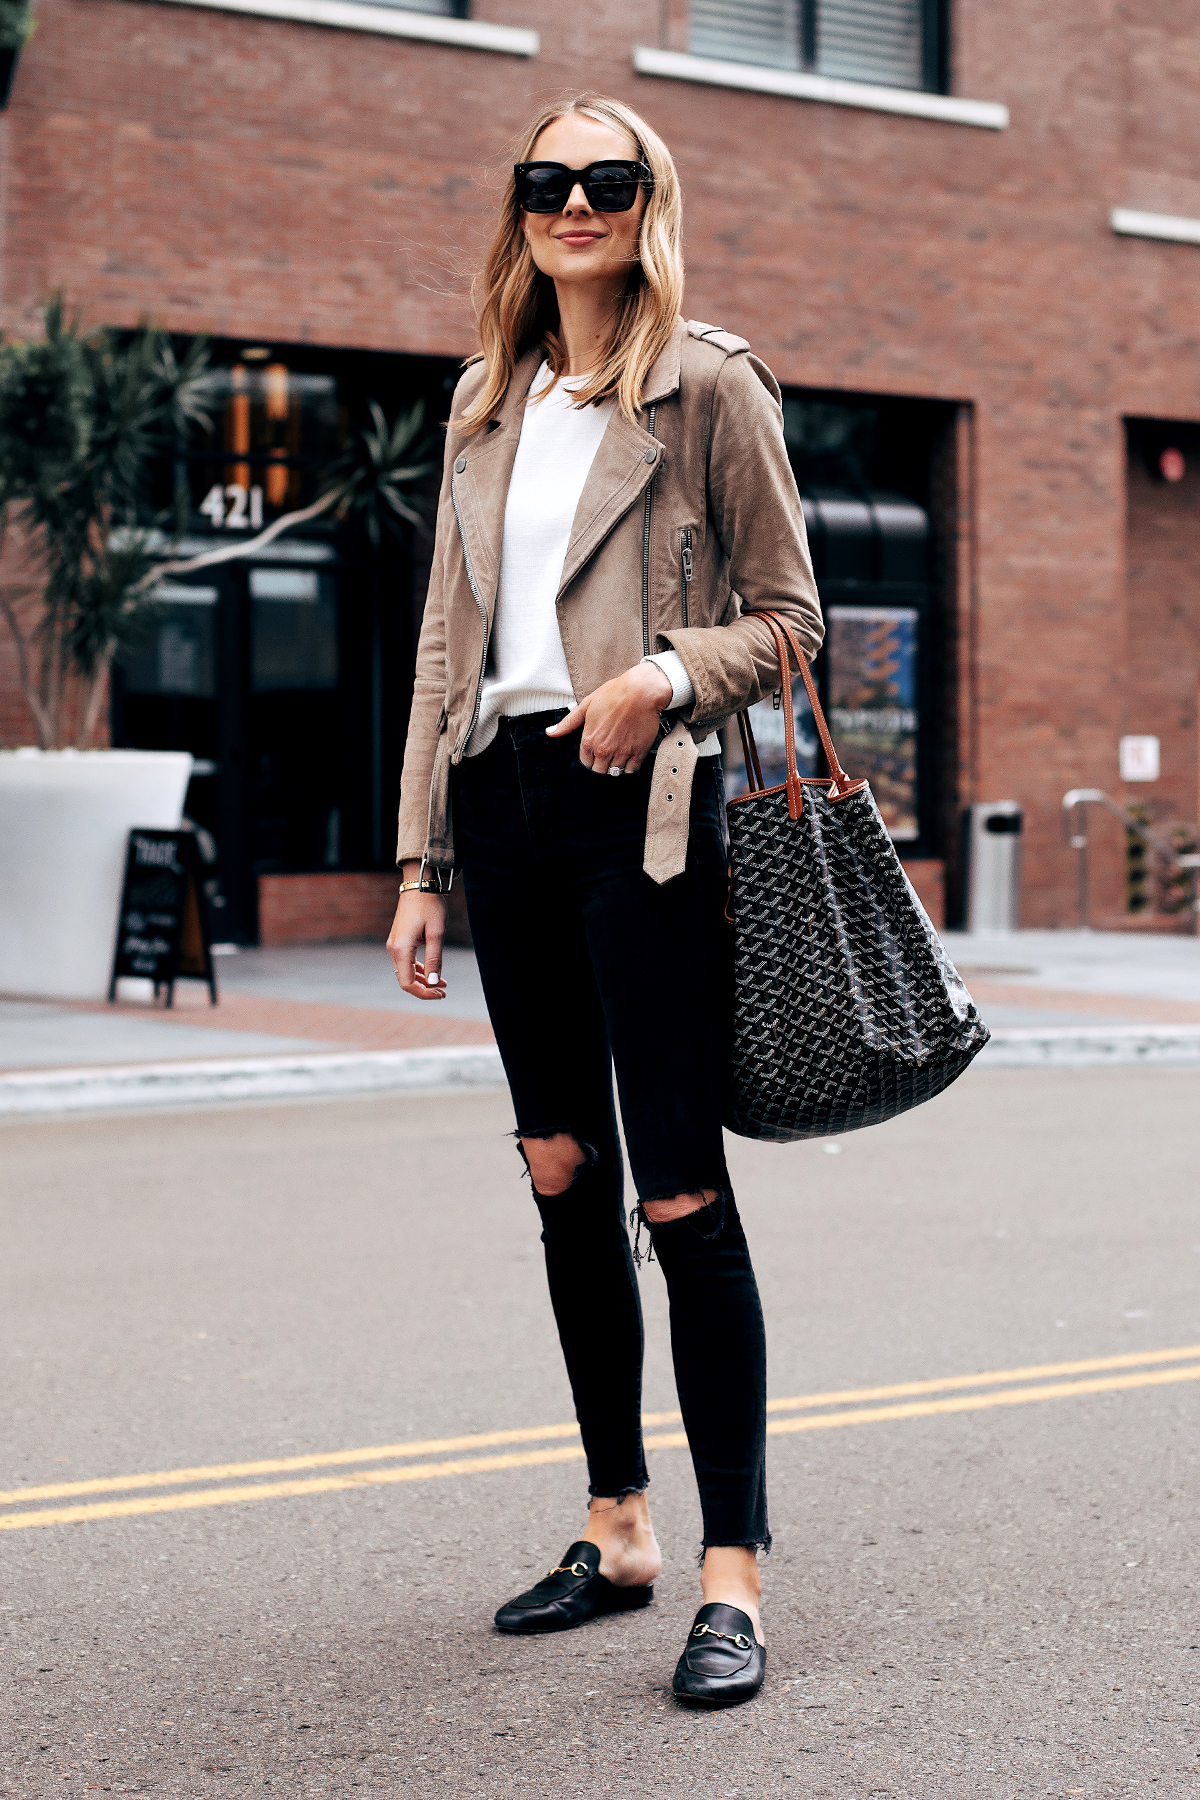 Fashion Jackson Capsule Wardrobe Wearing Blanknyc Tan Suede Moto Jacket White Sweater Madewell Black Ripped Skinny Jeans Gucci Black Mules Goyard Tote